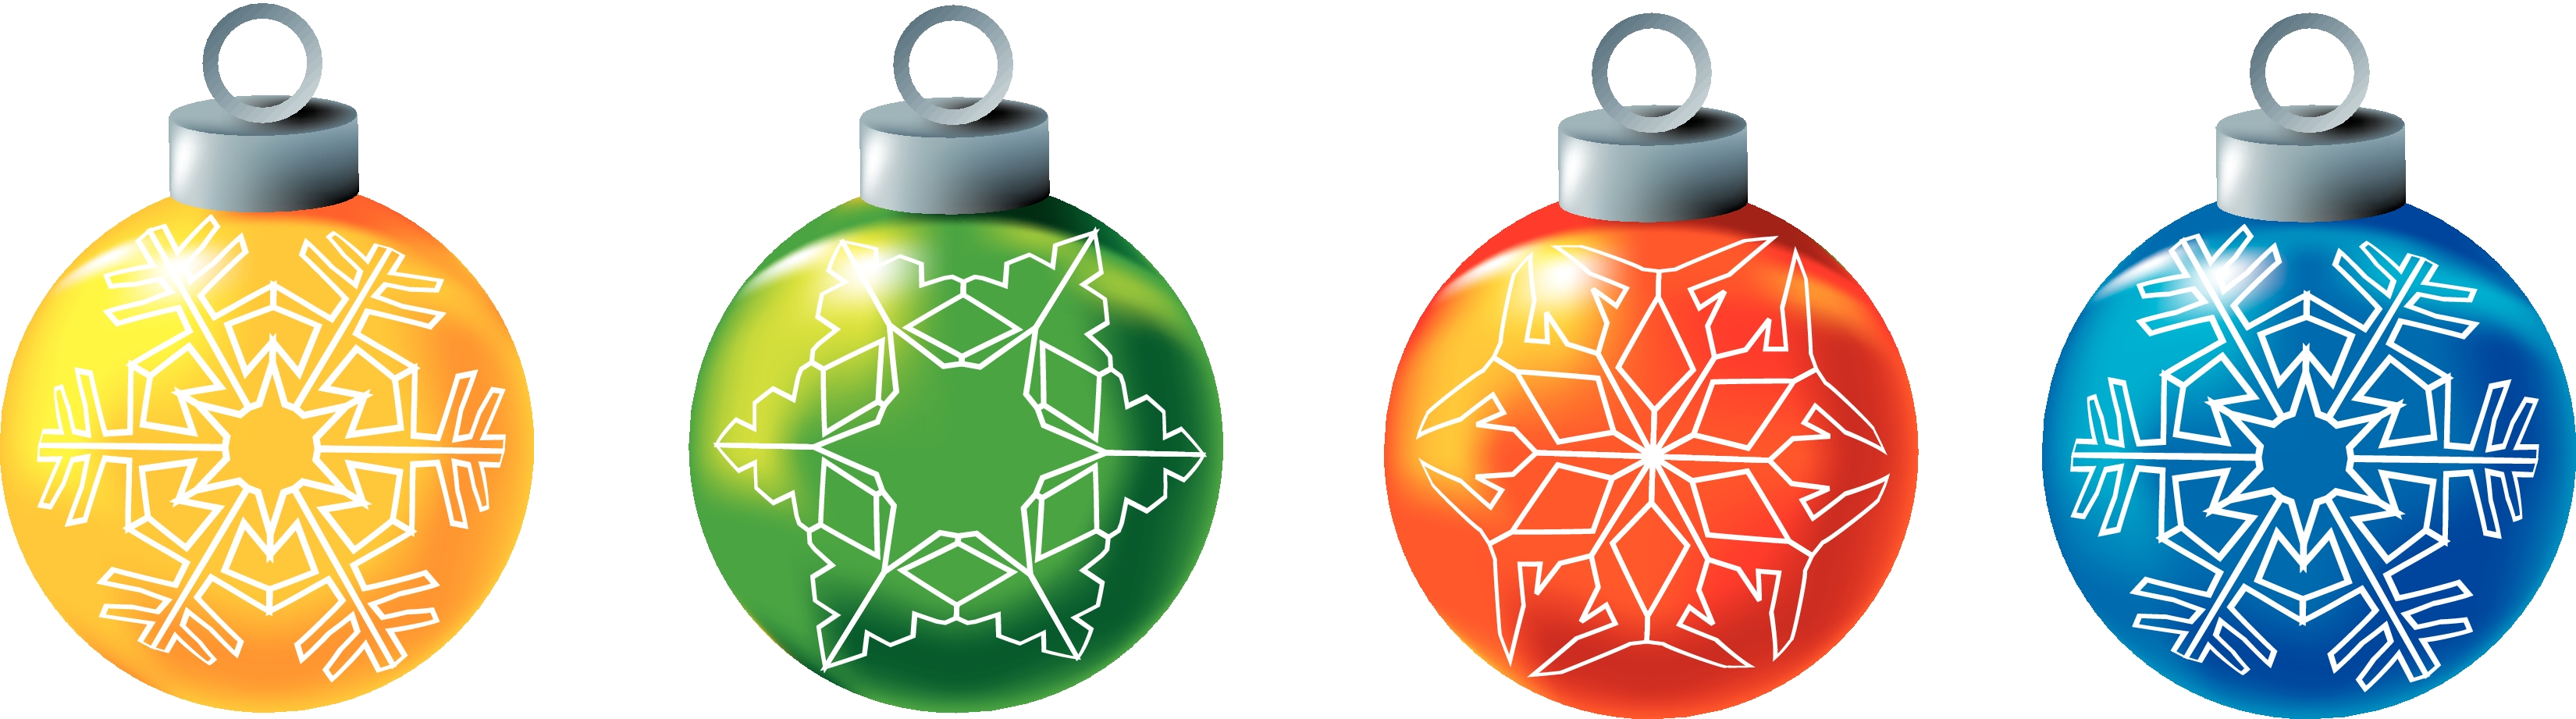 Colorful Snowflake Ornament  Row